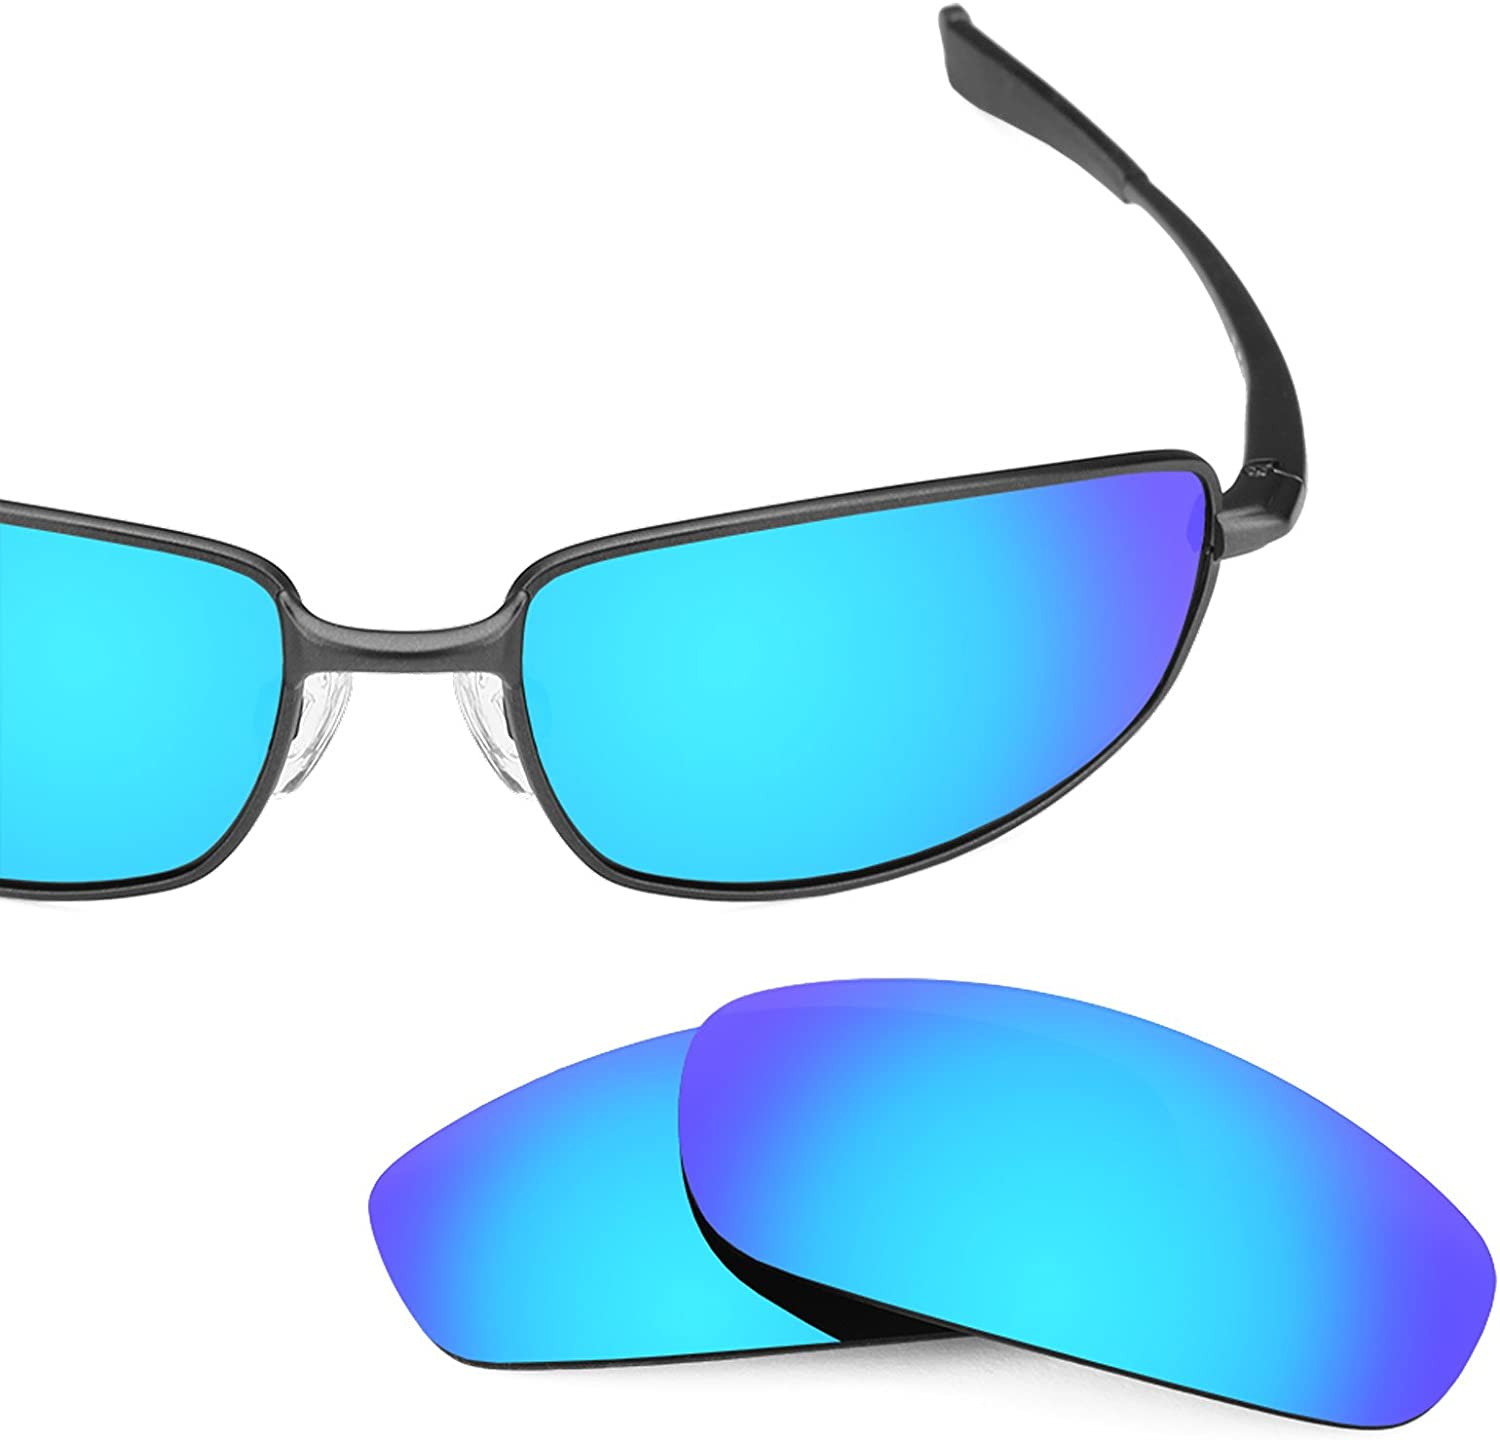 Revant Replacement Lenses for Revo Discern RE3084 3 Pair Combo Pack K015